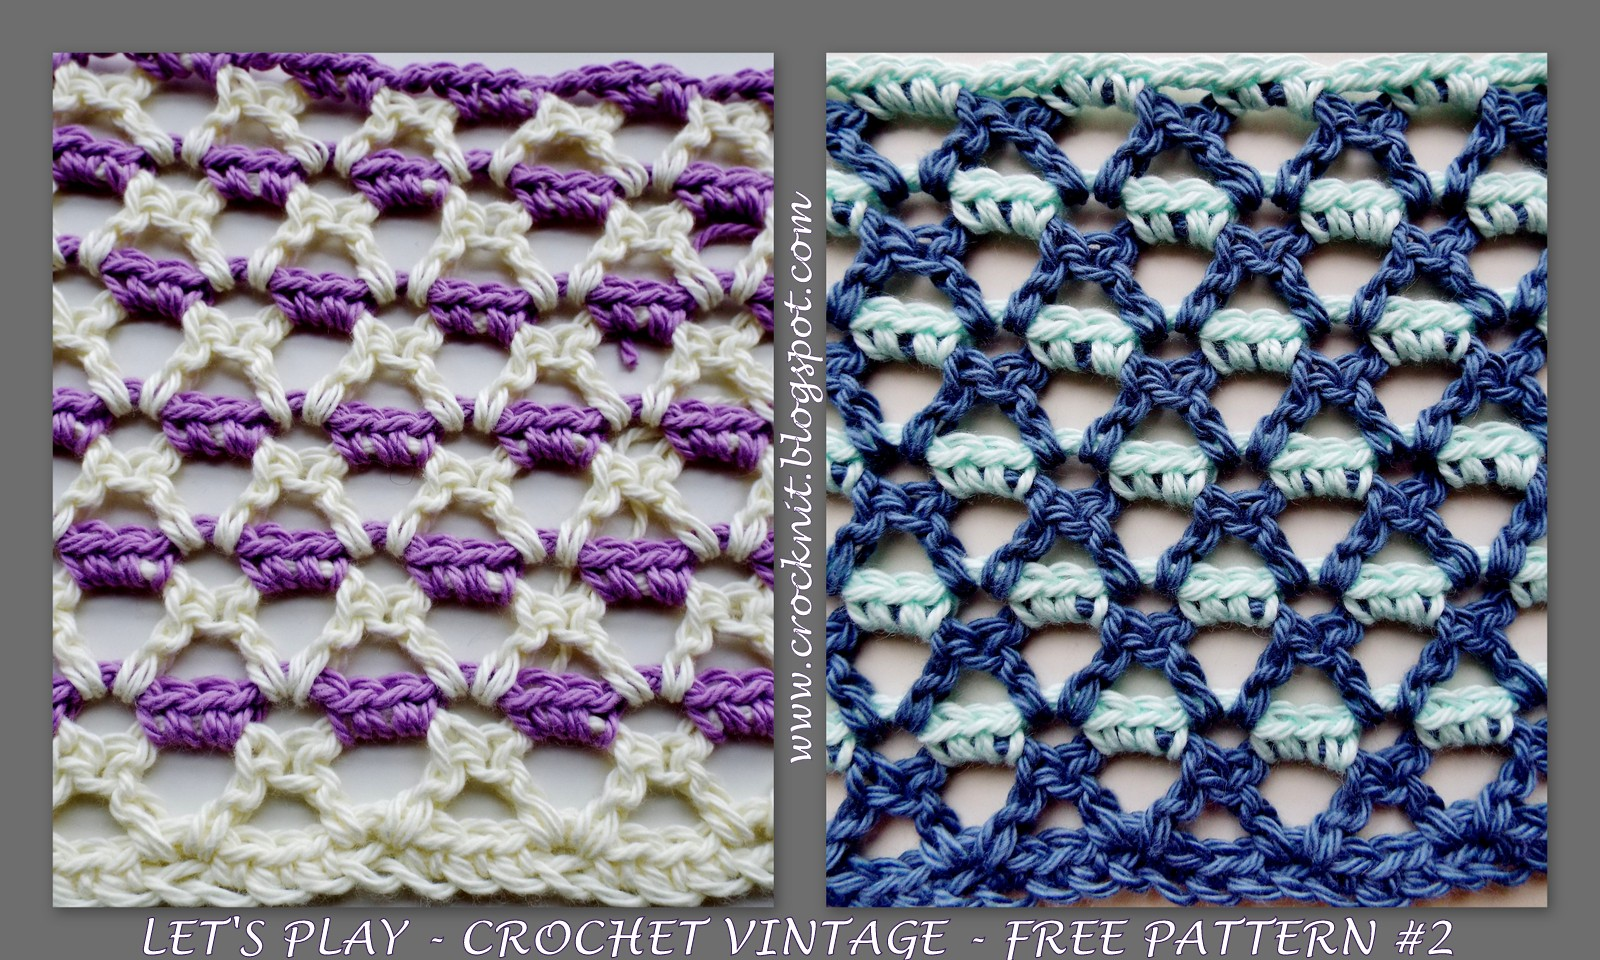 Crochet Stitch Rtrf : MICROCKNIT CREATIONS: LETS PLAY - CROCHET VINTAGE - FREE PATTERN #2